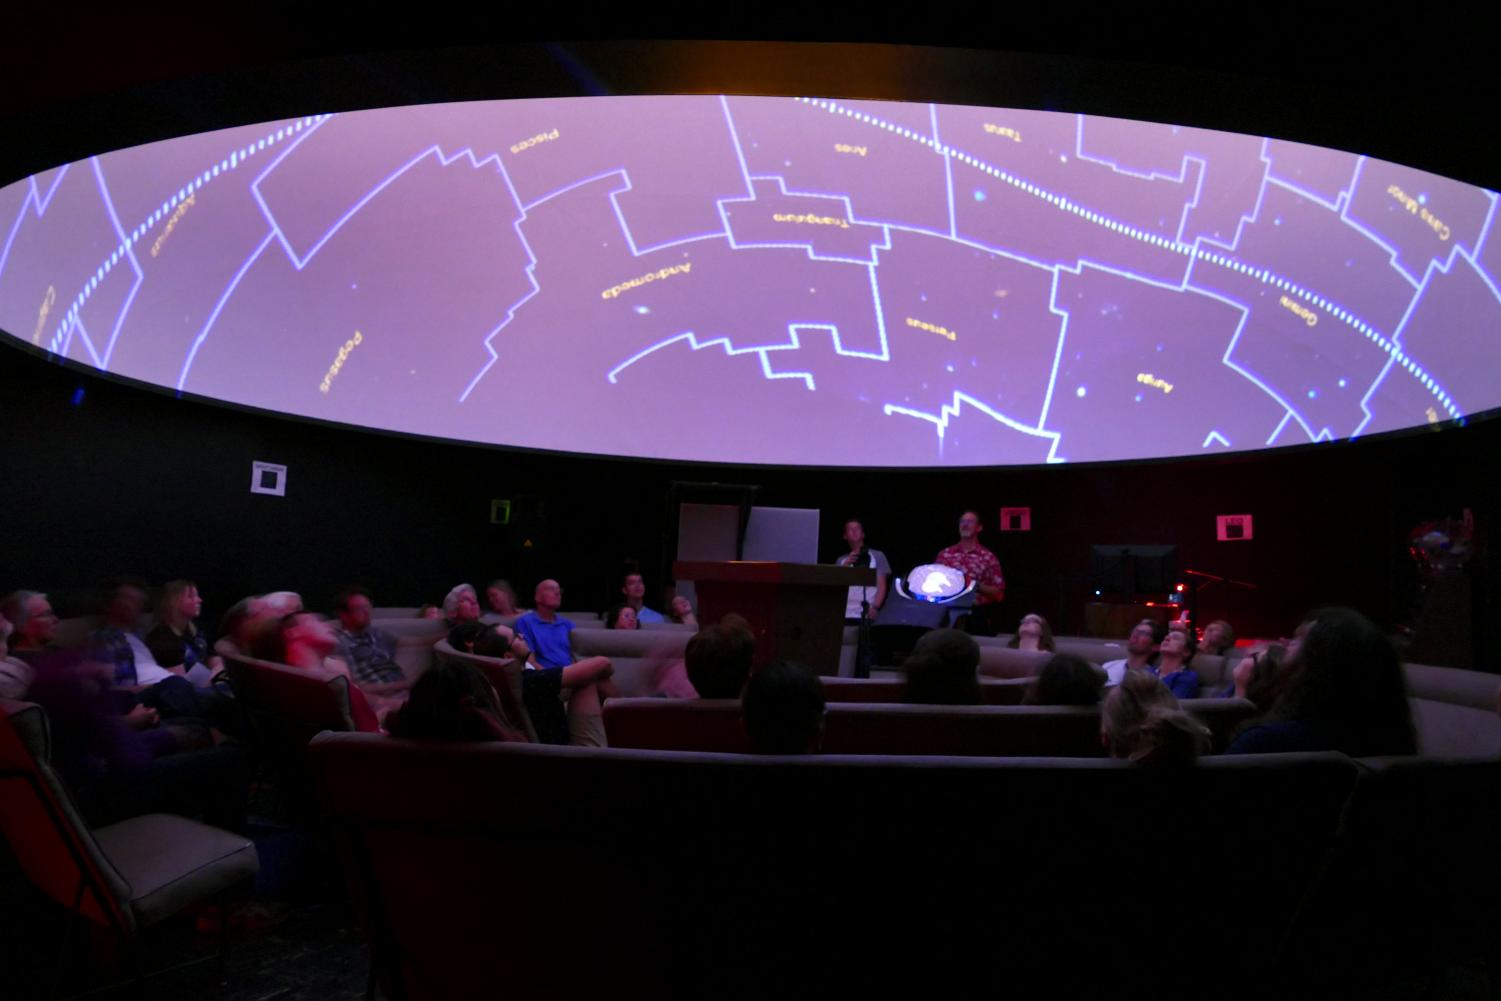 Guy Worthey, planetarium co-director and WSU astrophysics professor, teaches his audience about constellations and galaxies during his 'Galaxies like Dust' show Friday in the WSU Planetarium. He said the planetarium is a perfect date opportunity.